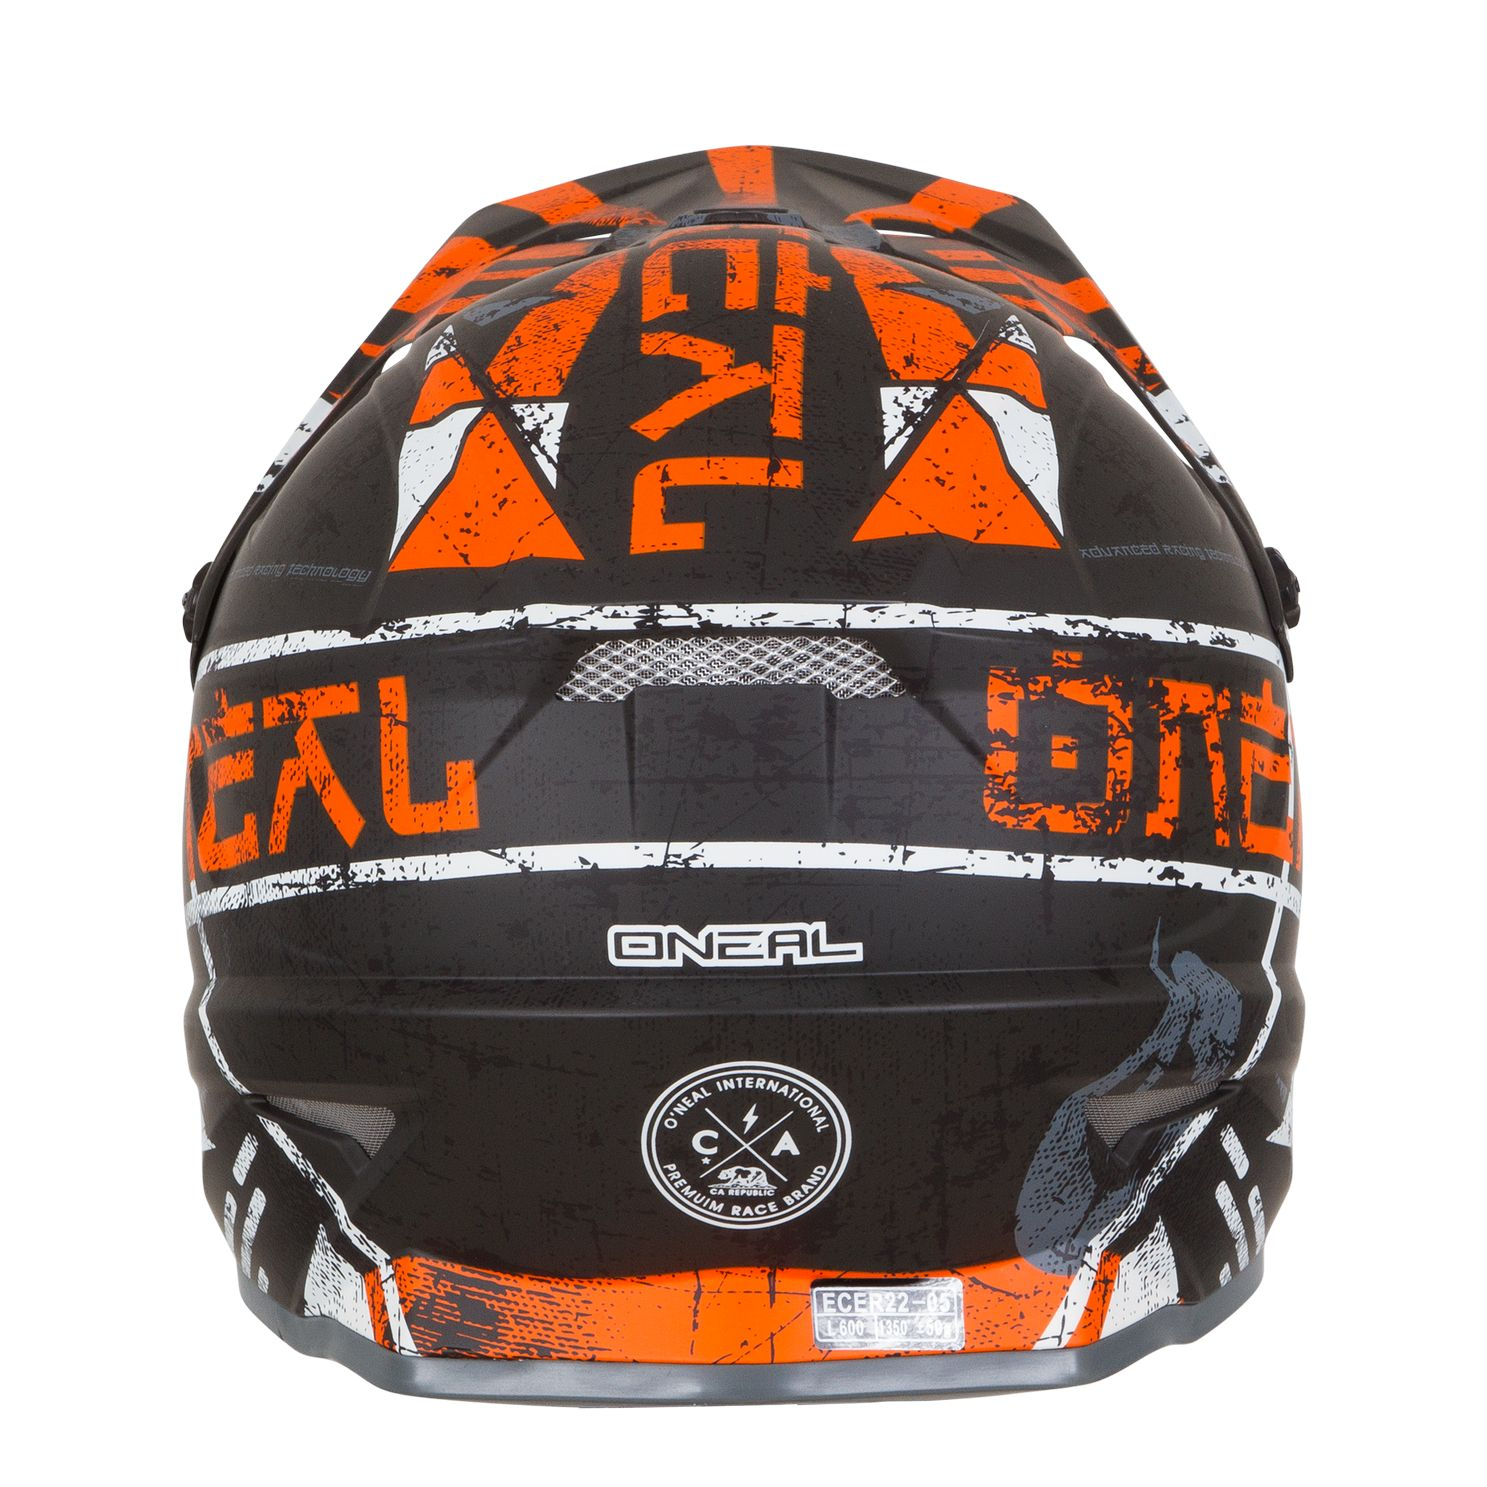 Casco de motocross O'Neal 3 SERIES - ZEN - ORANGE 2019